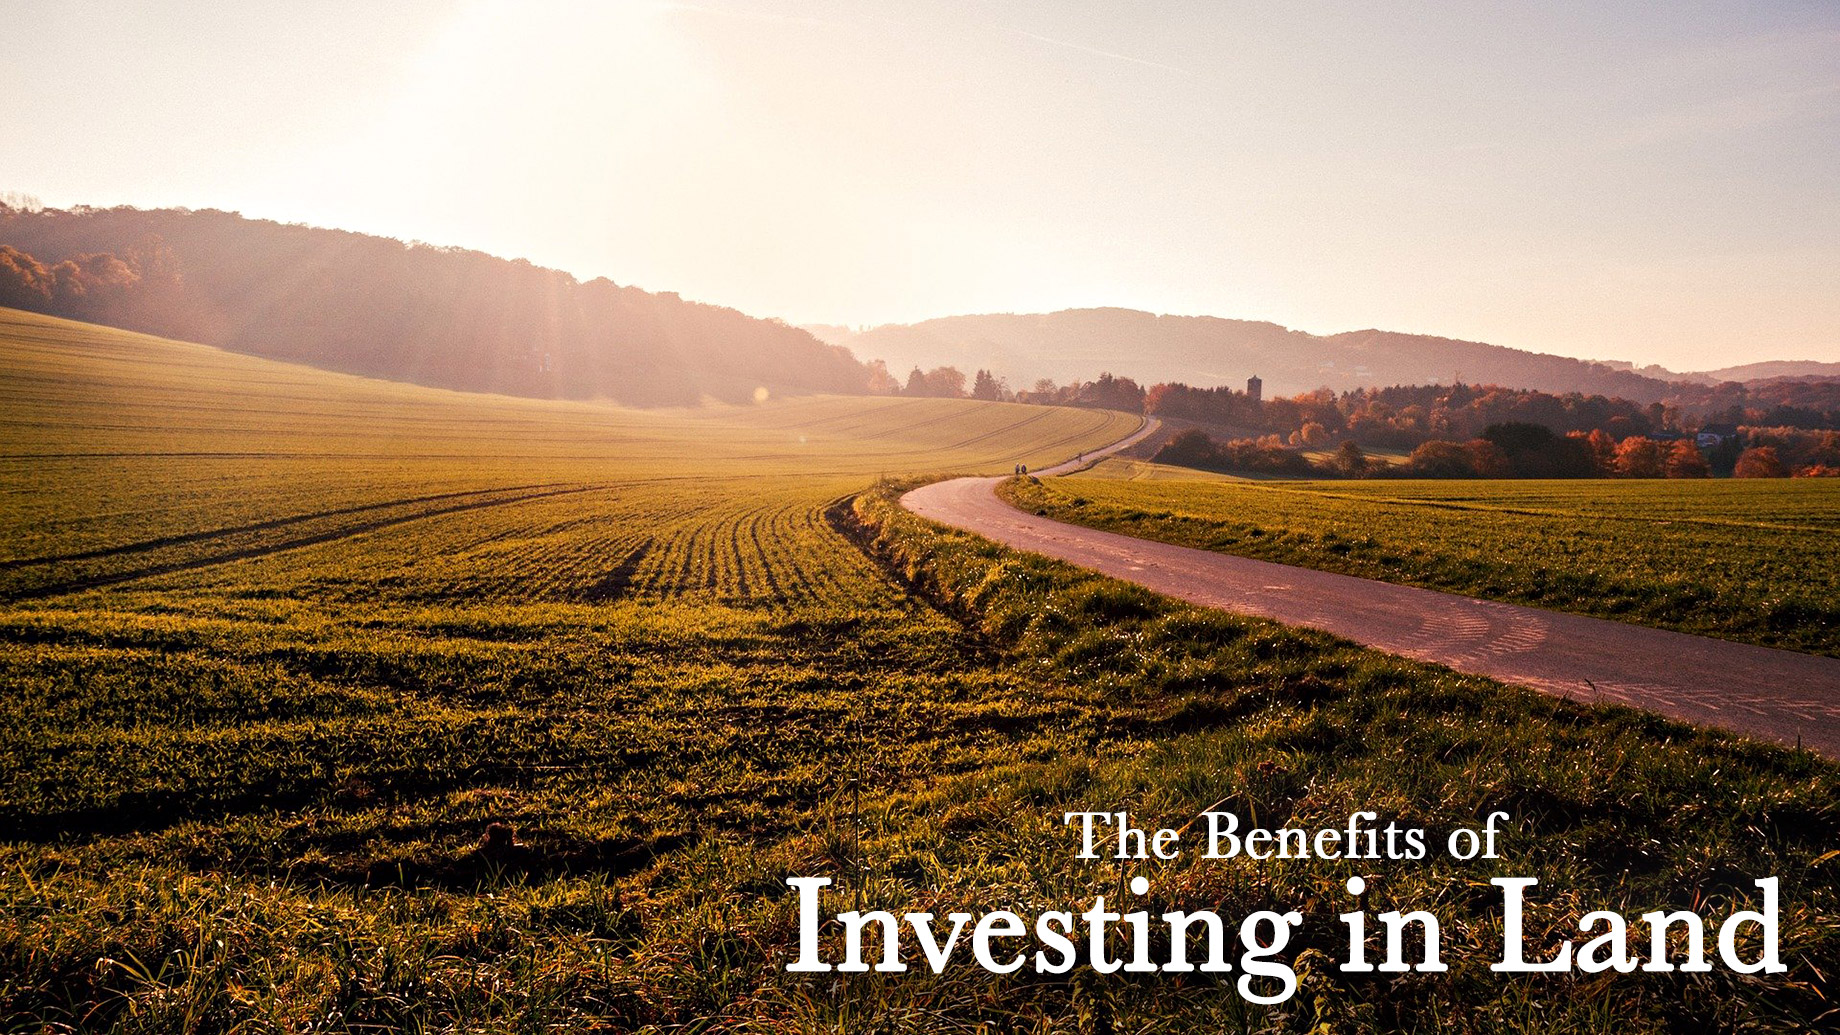 The Benefits of Investing in Land